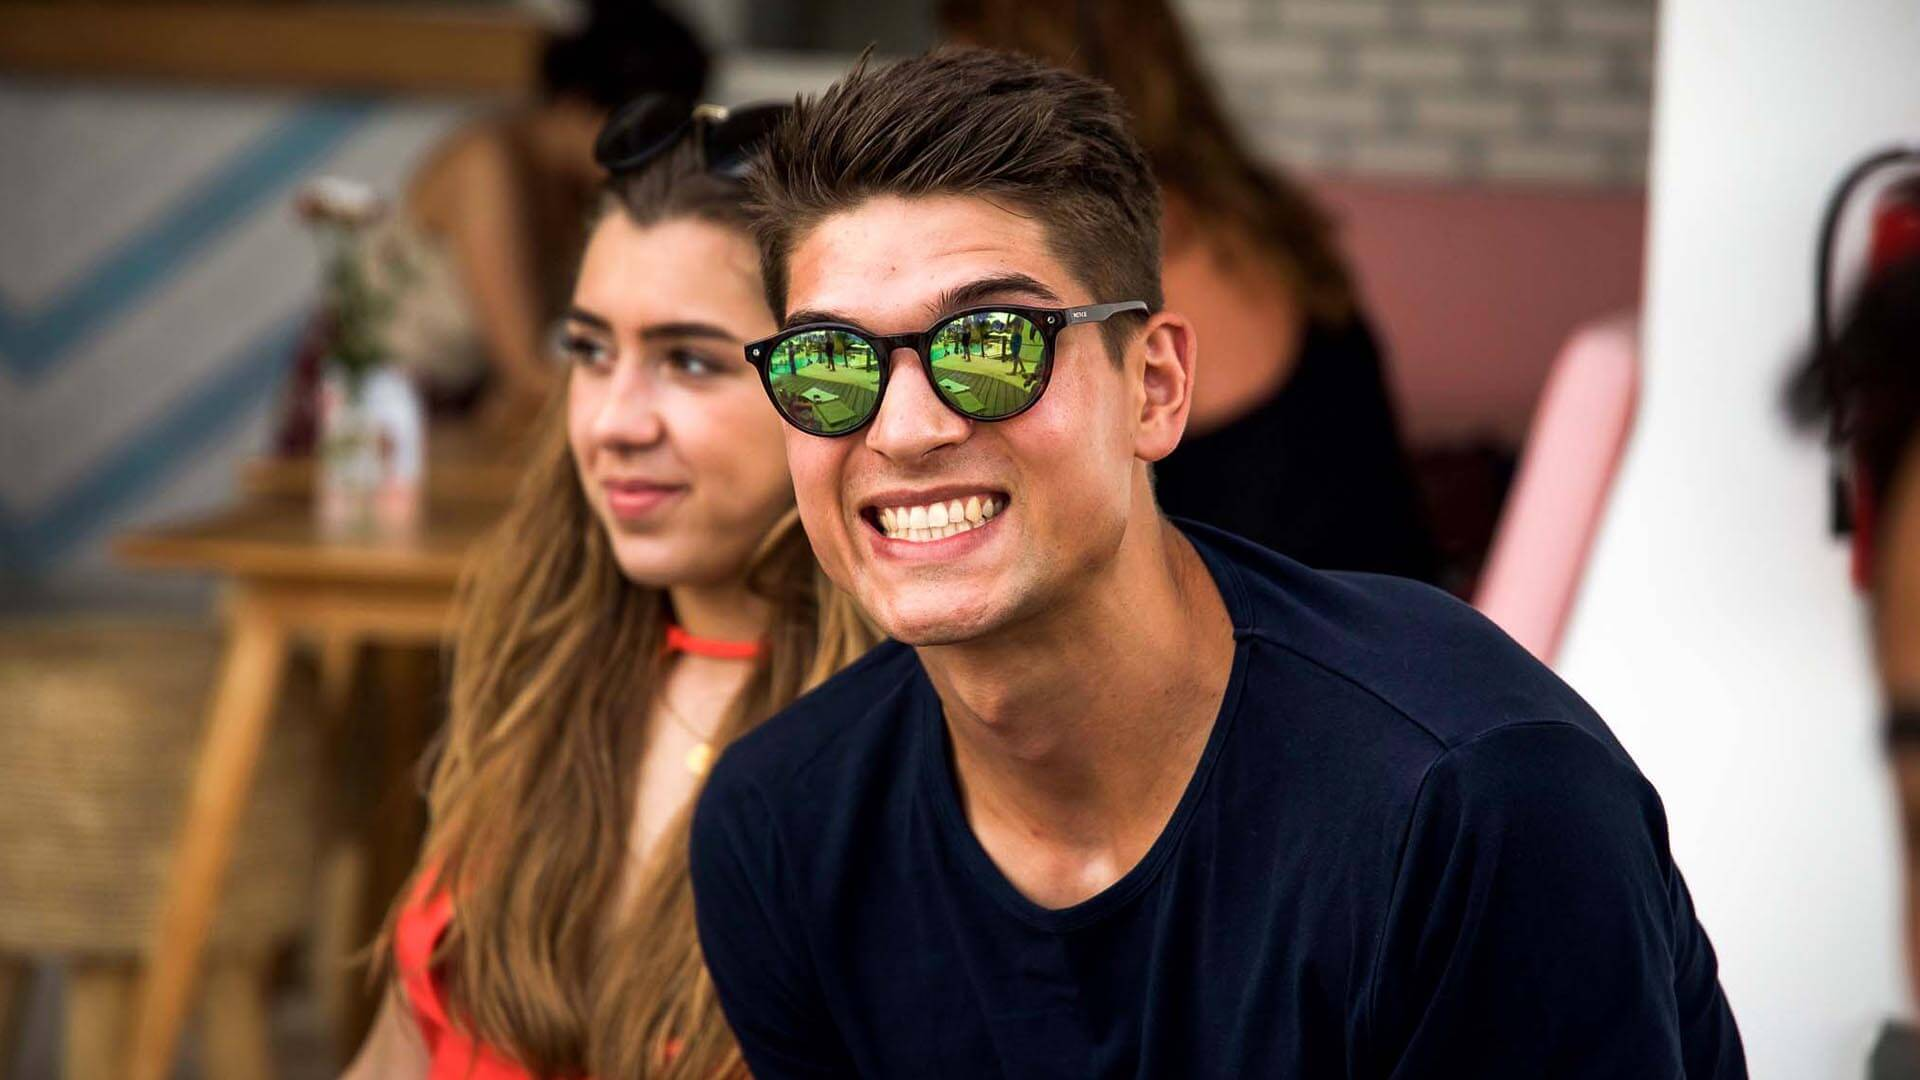 A man is smiling and wearing sunglasses